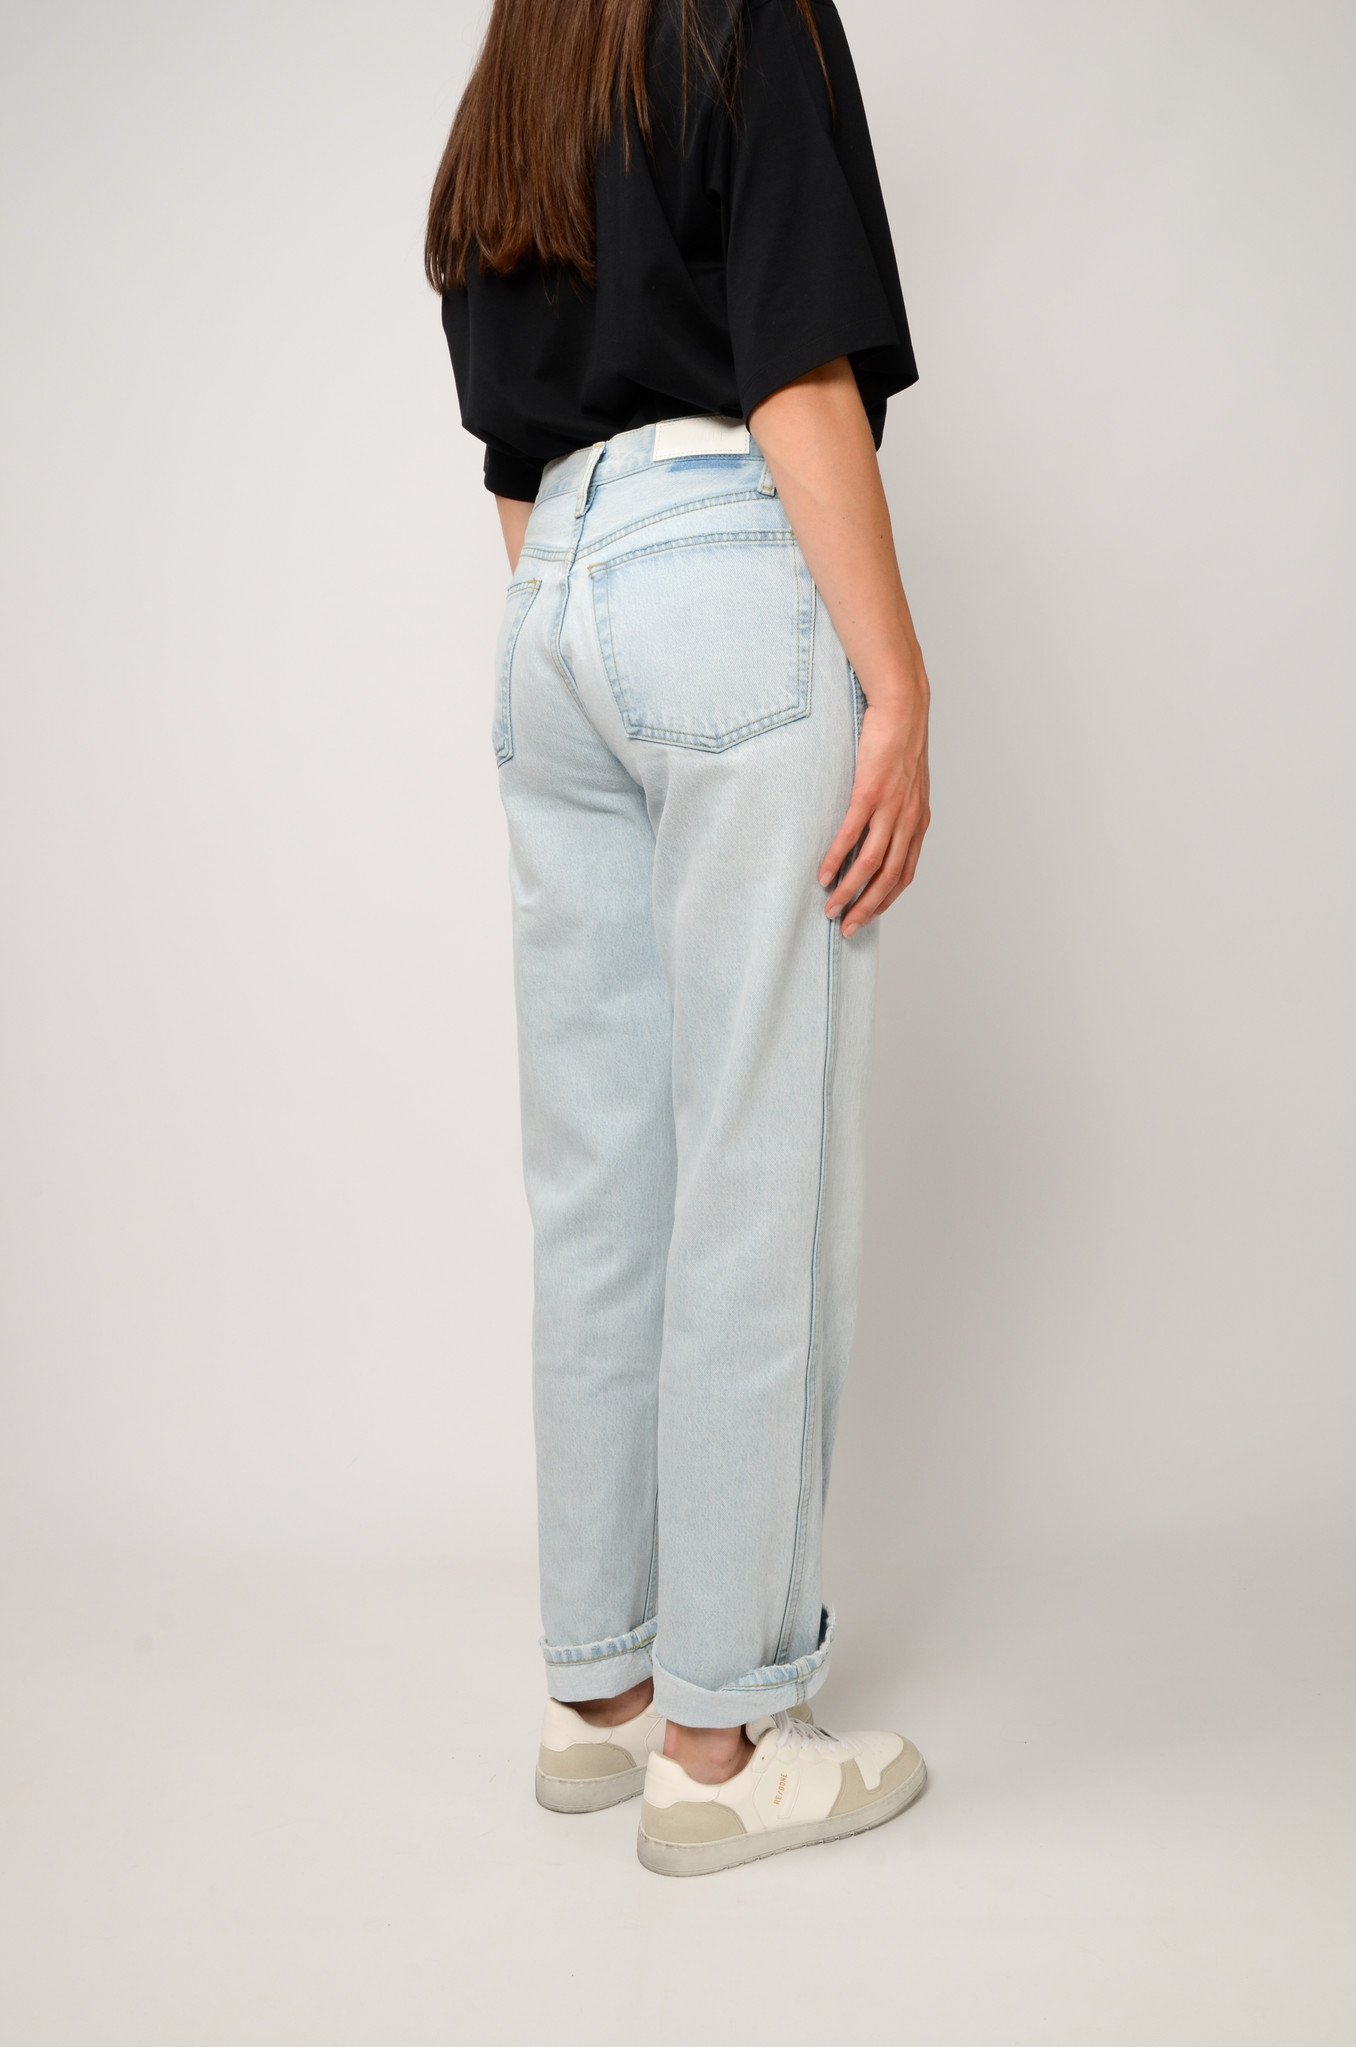 90S HIGH RISE JEANS-4